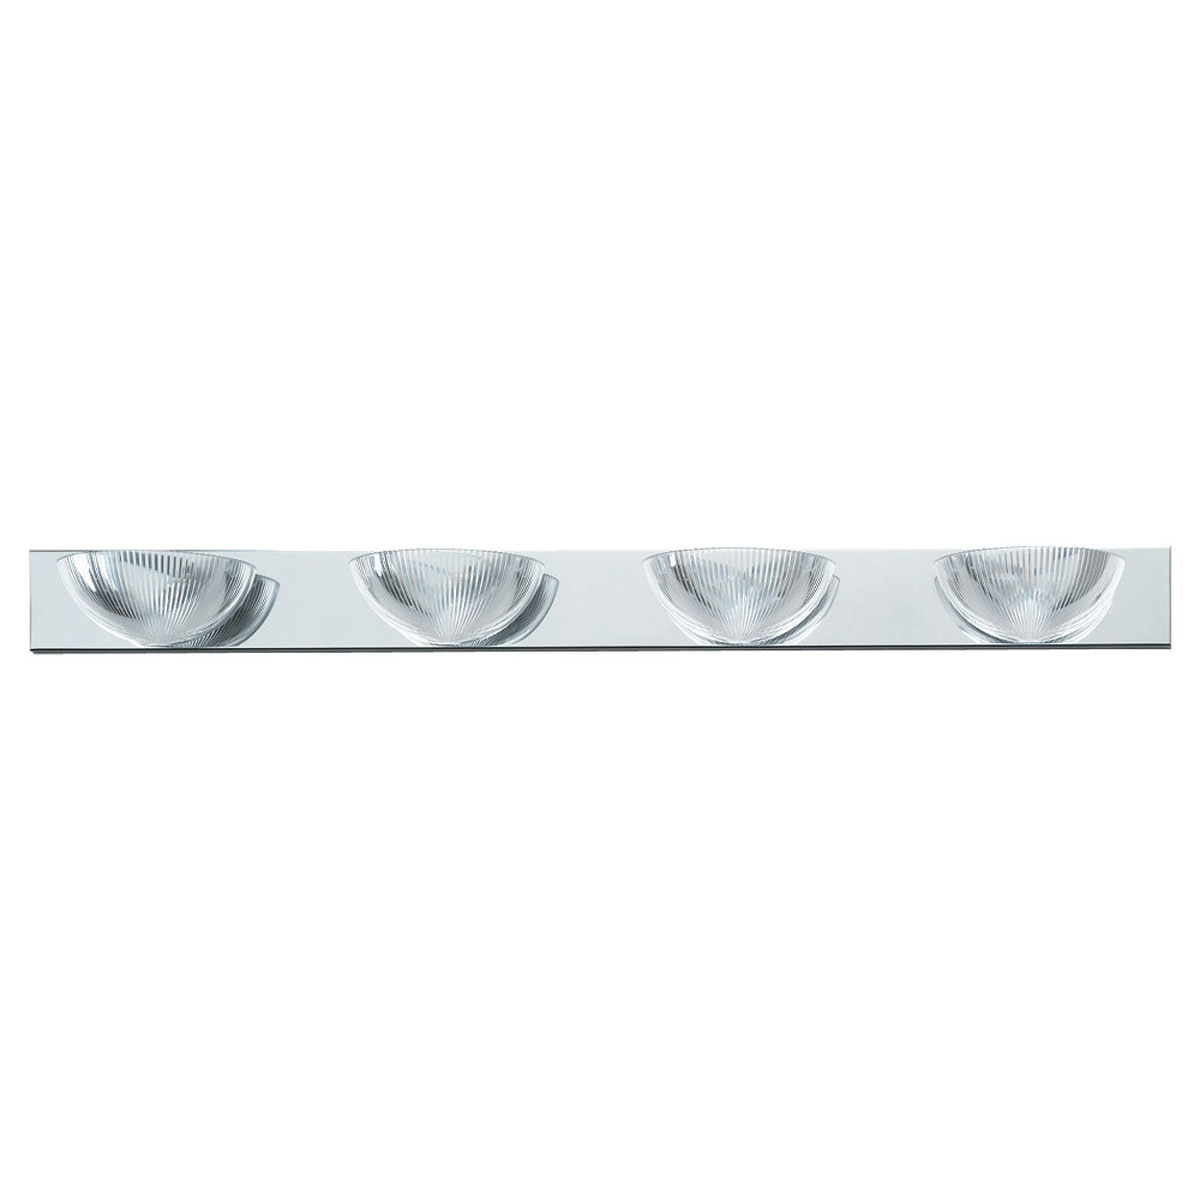 Sea Gull Lighting Oceanic 4 Light Bath Vanity in Chrome 4725-05 photo